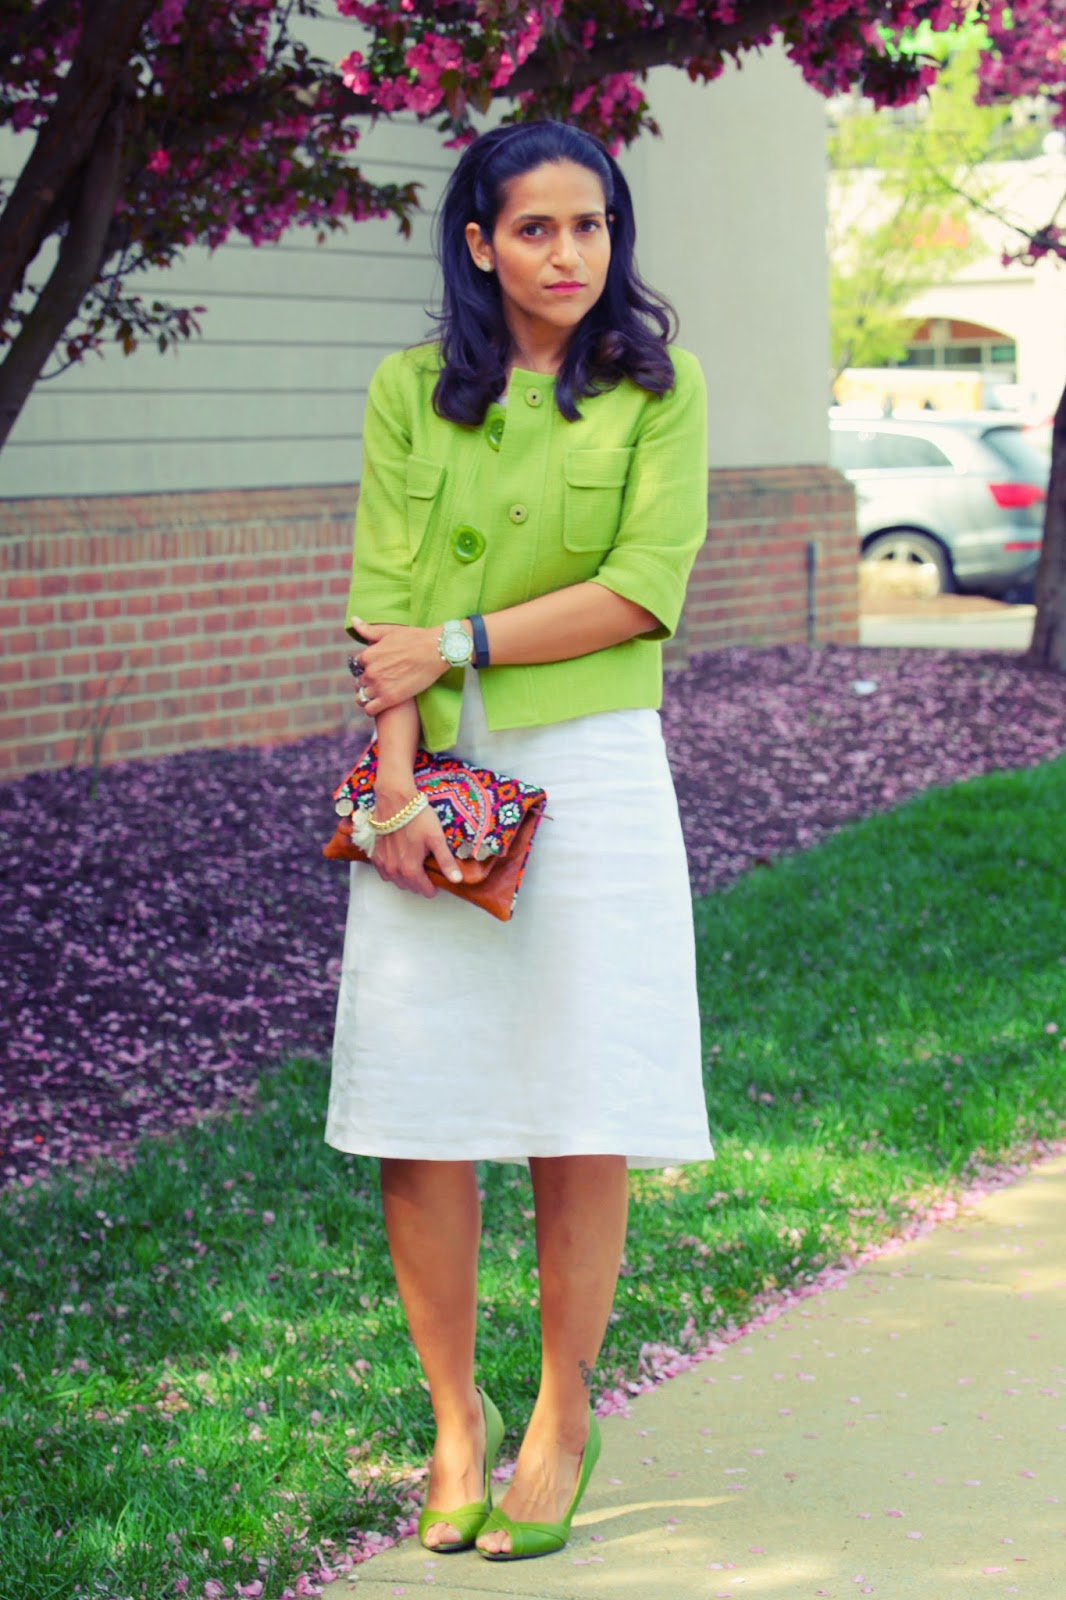 Jacket - Michael Kors Dress - Custom Made in India Shoes - Ted Baker Bag - Crazy & Co.  Bracelet - Shop Jami Tanvii.com